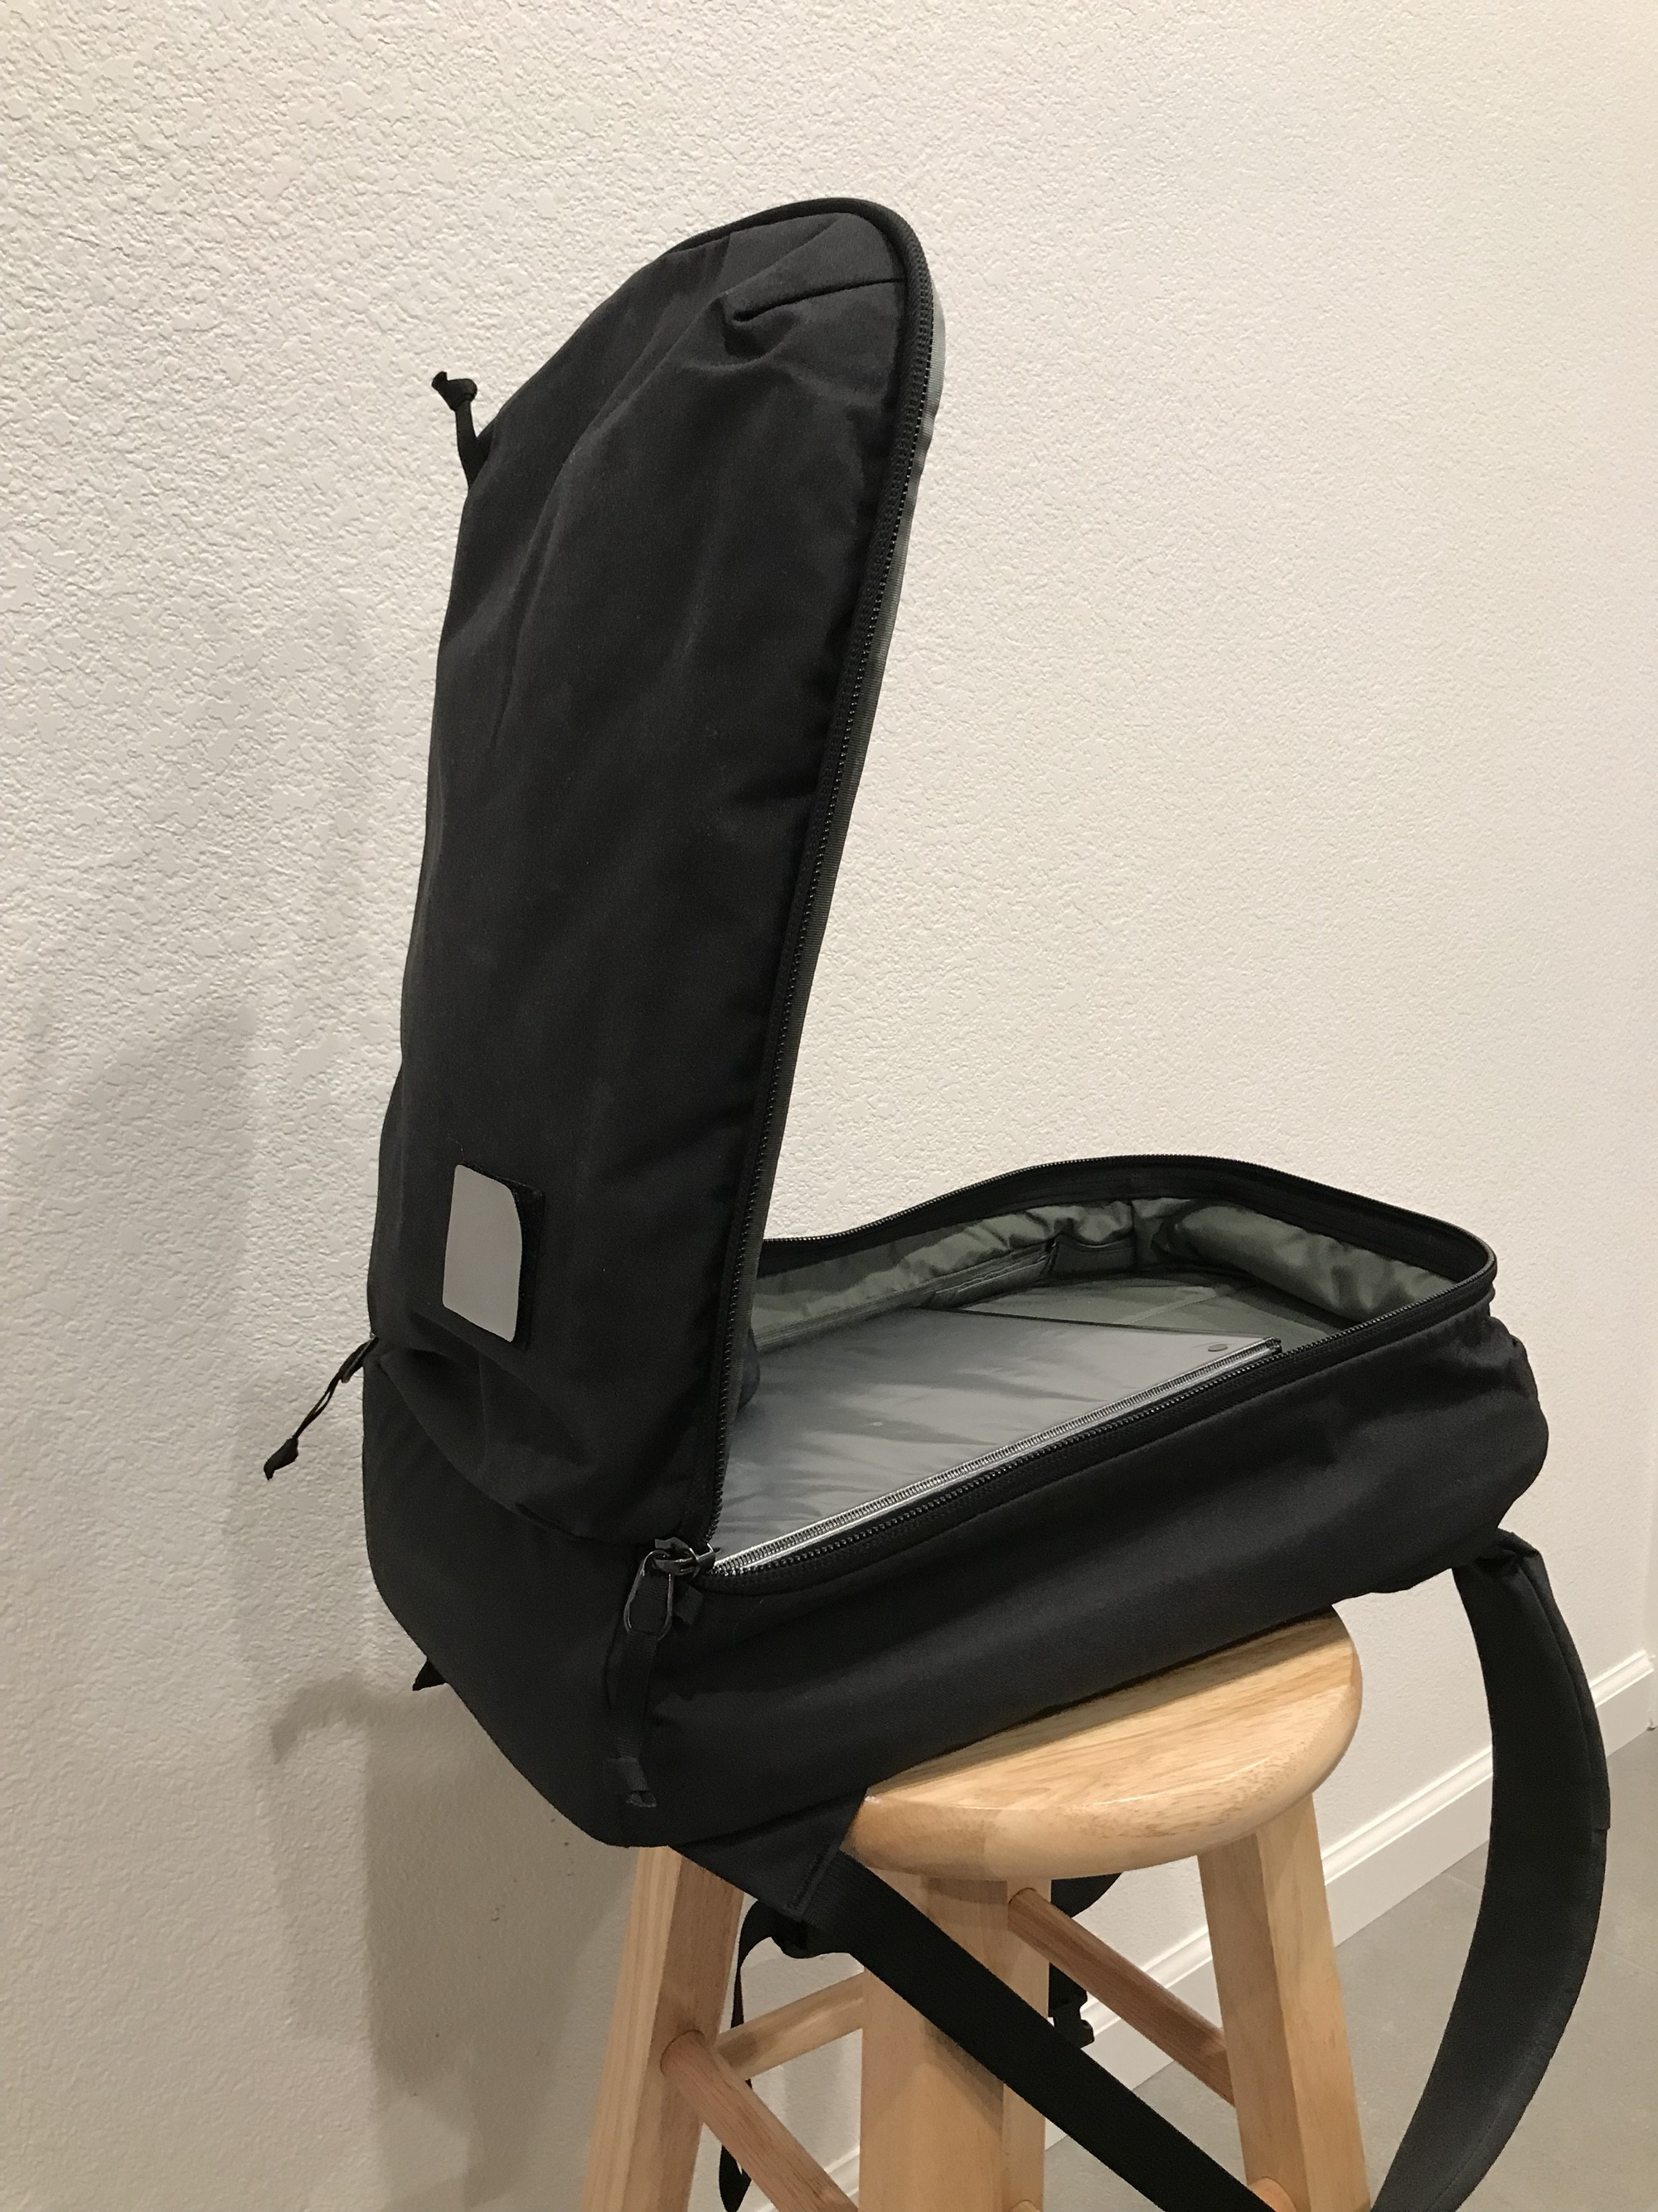 EVERGOODS CPL 24 Review - Pangolins with Packs